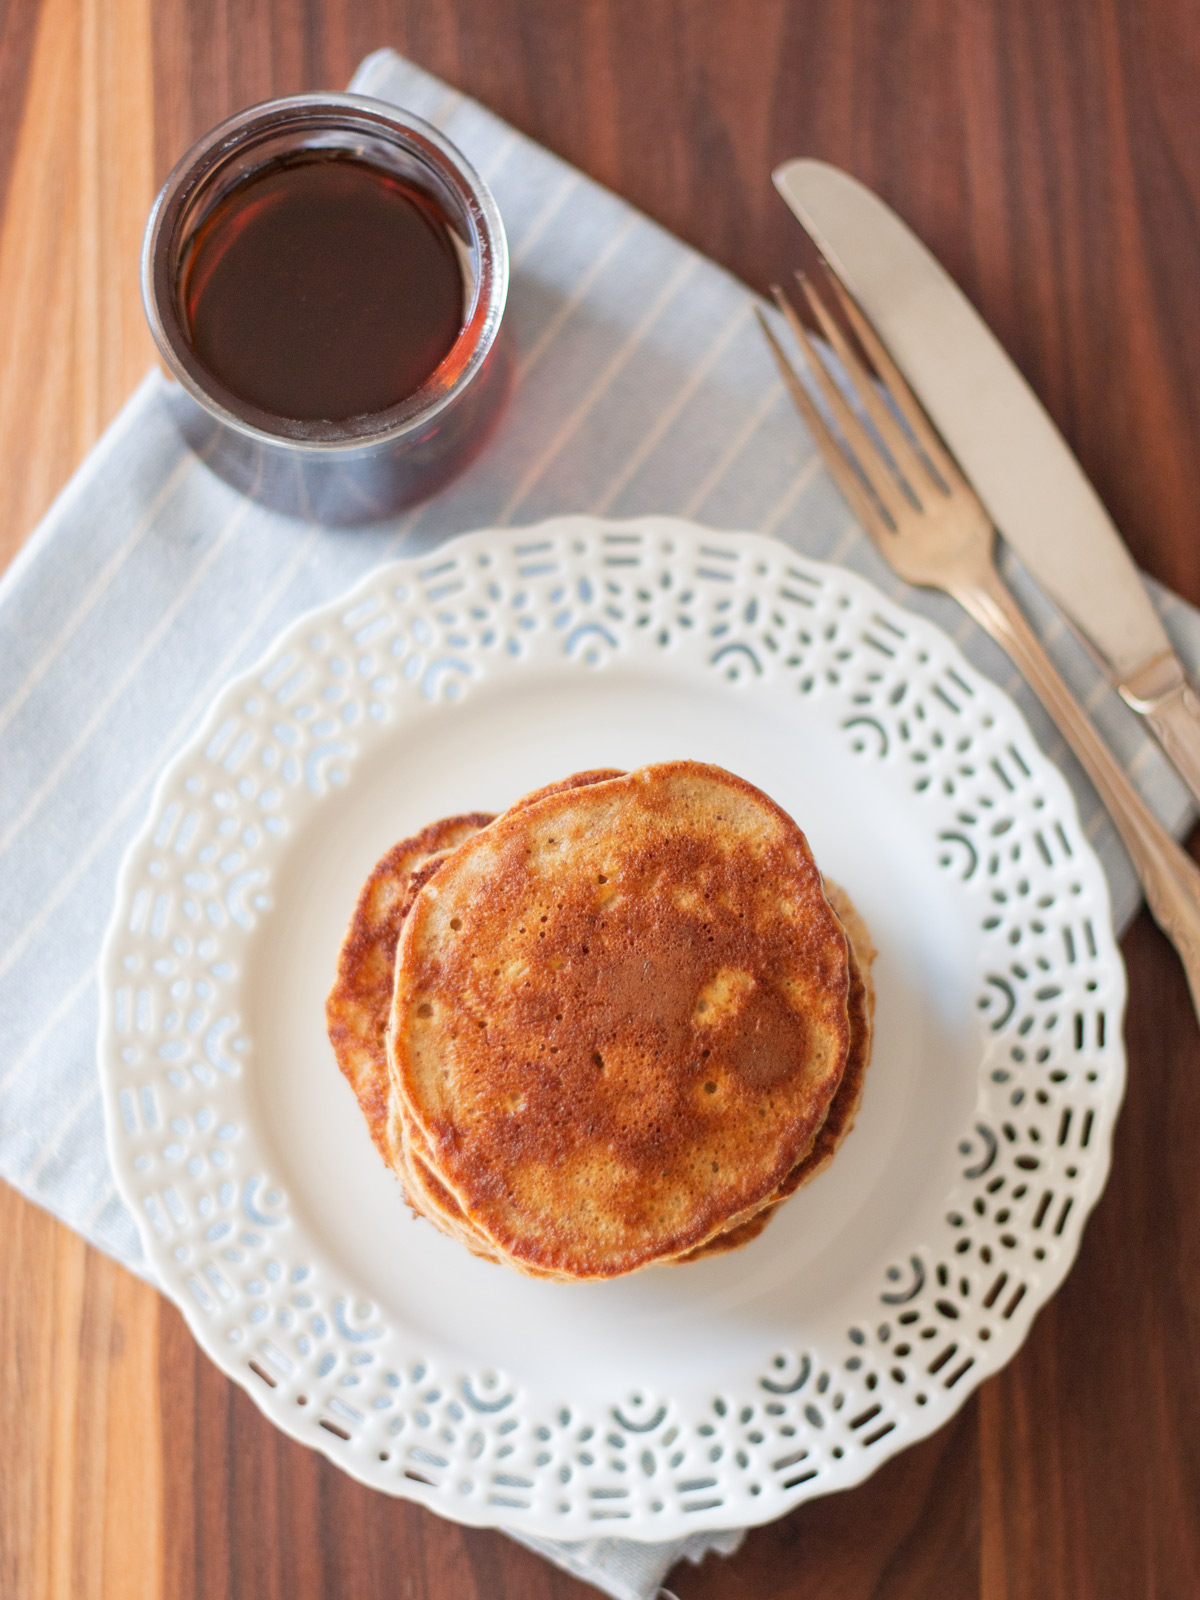 Easy Apple Banana Pancakes - These tasty pancakes are a great way to start any morning. | Wholesome Skillet